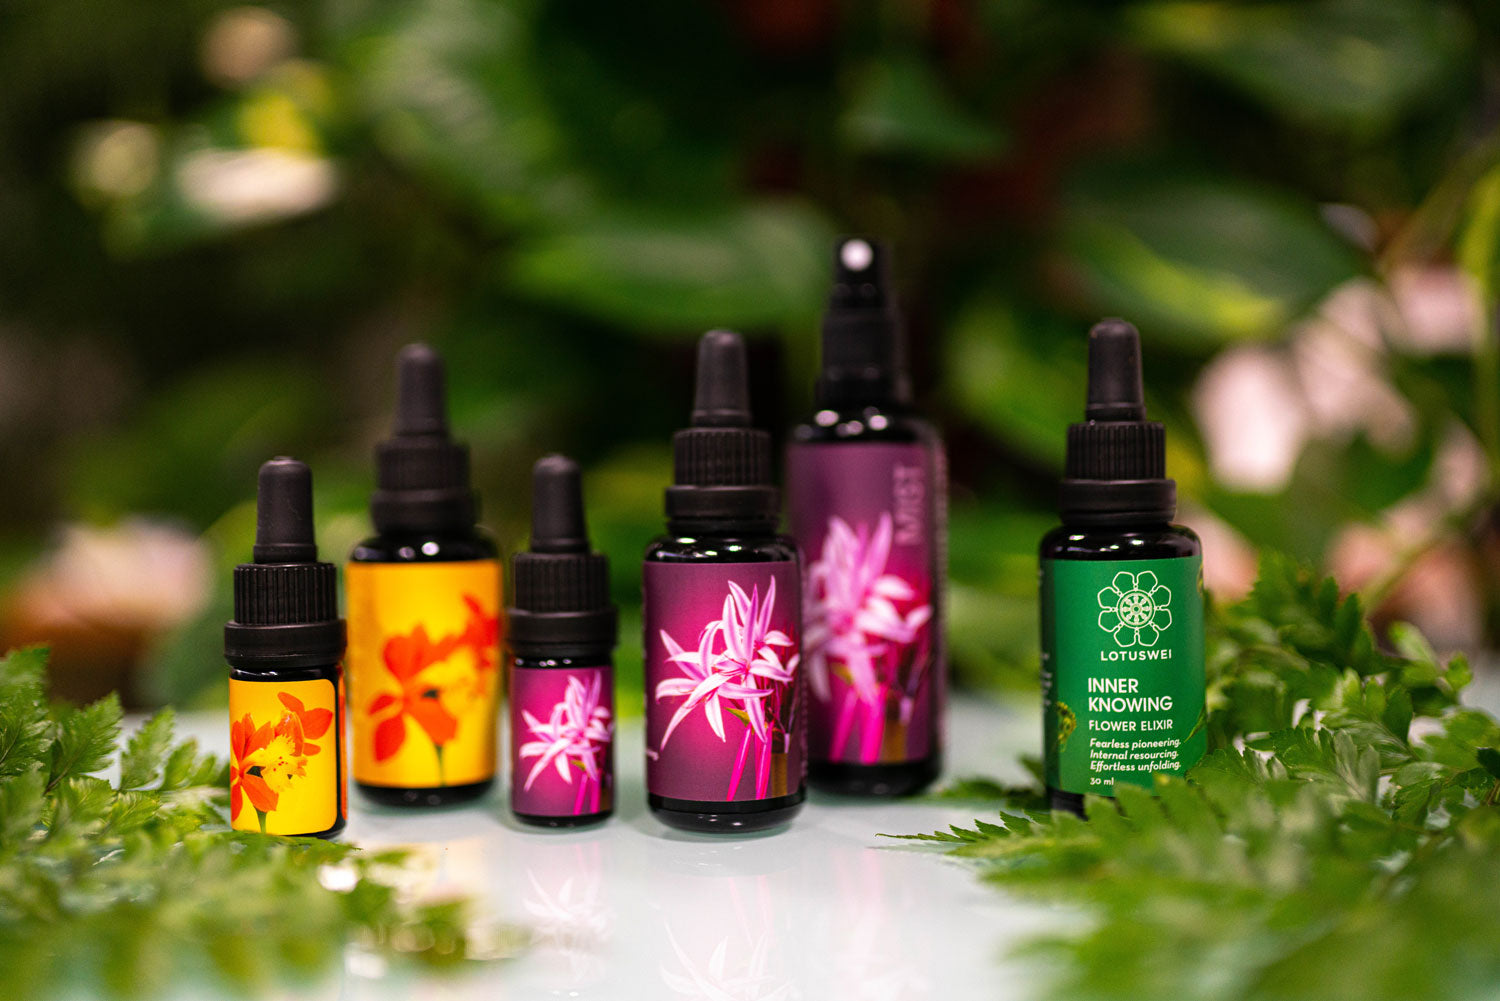 lotuswei flower essence collection inner knowing inspired action gamechanger